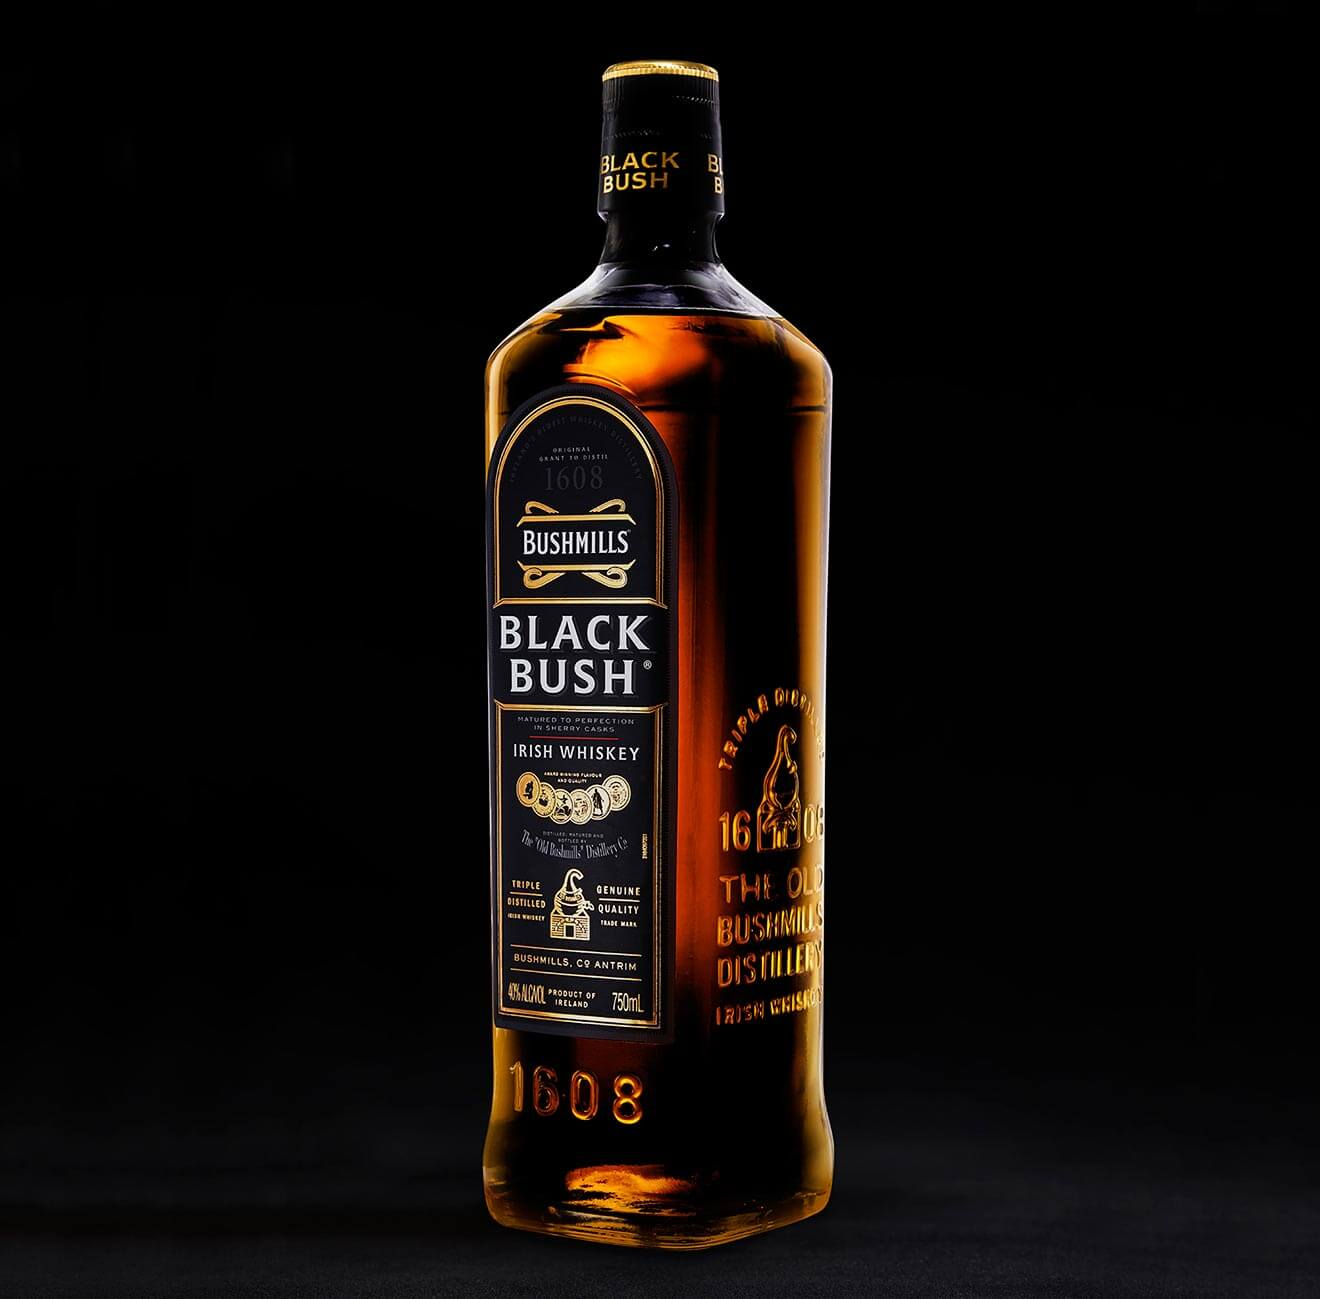 Black Bush Whiskey bottle shot, what's chilling right now